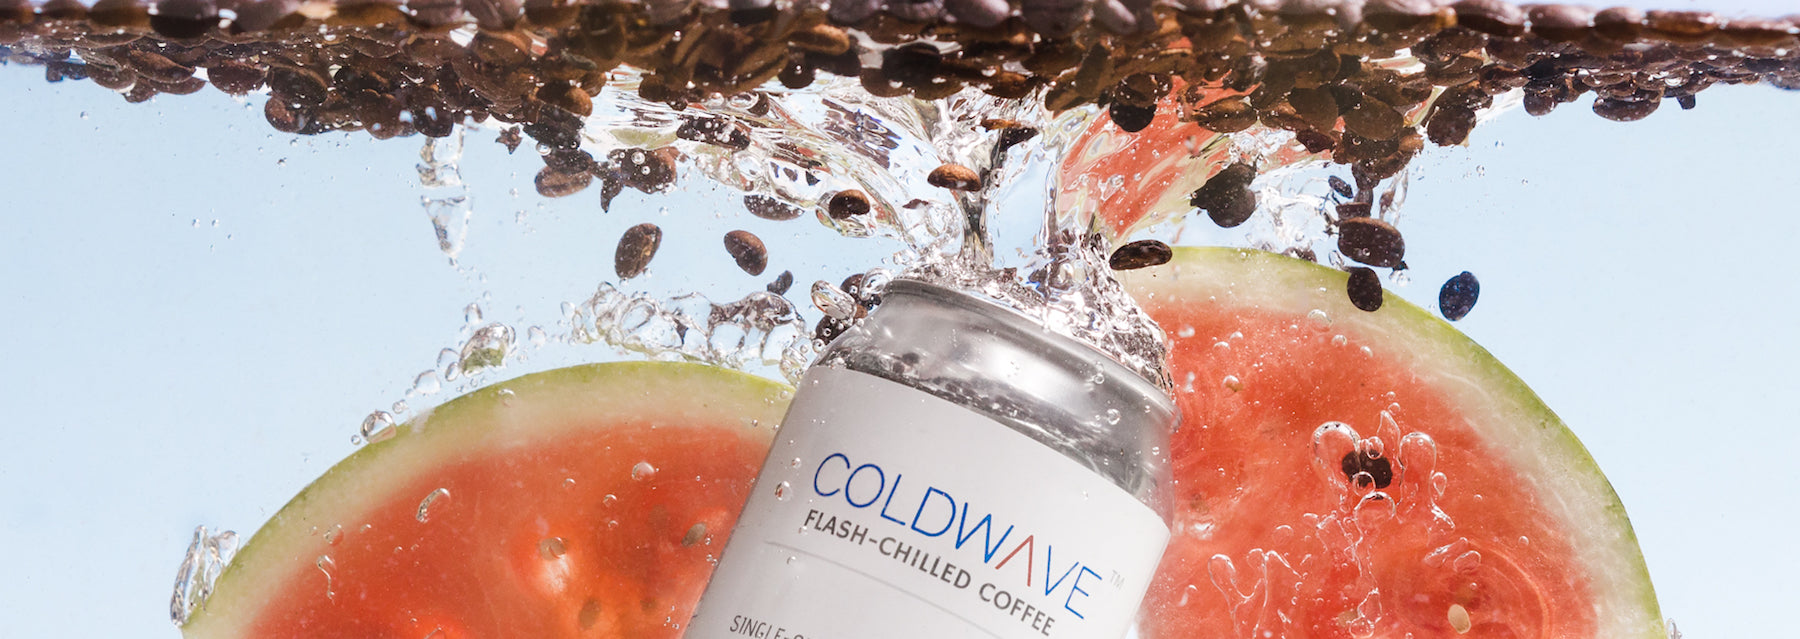 flash chilled coffee by coldwave